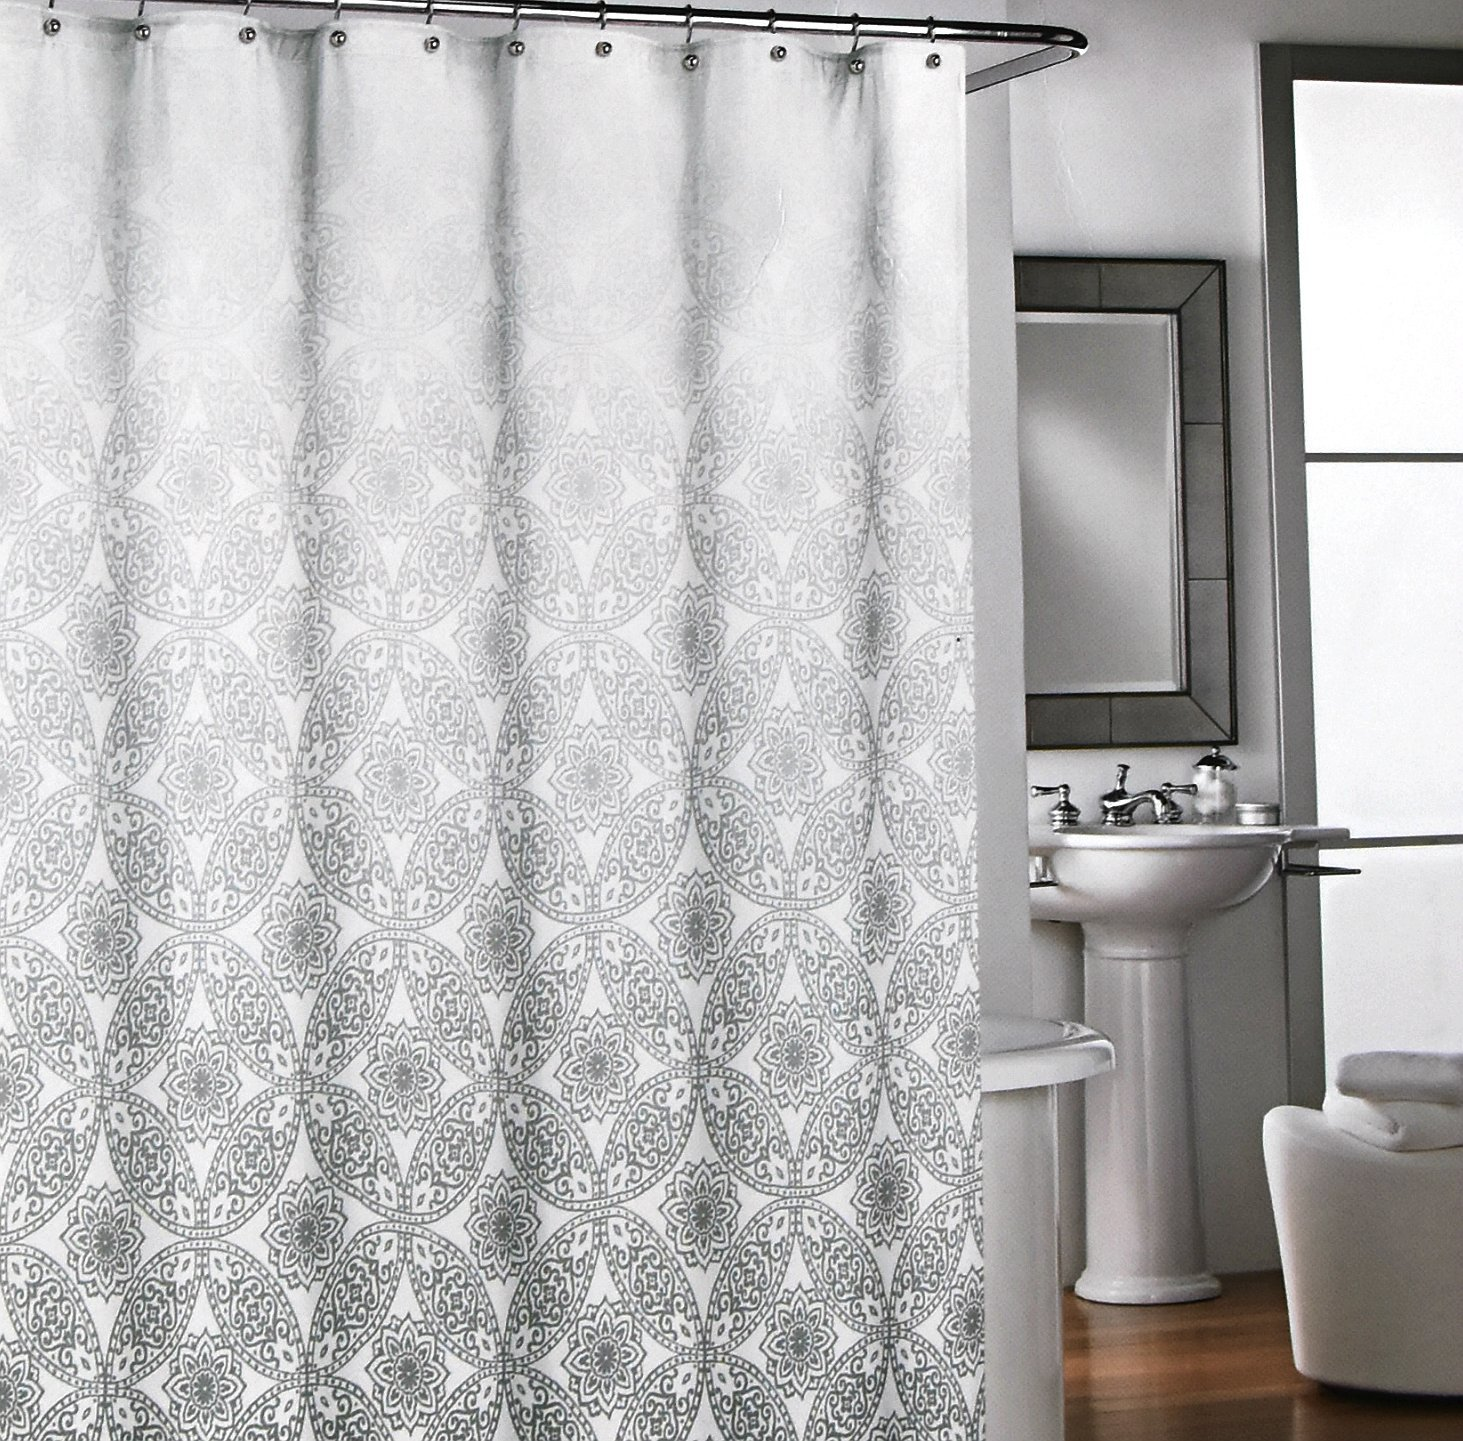 Amazon.com: Cynthia Rowley Luxury Fabric Shower Curtain Grey And White Lace  Damask Ombre Pattern 72 Inch By 72 Inch: Home U0026 Kitchen